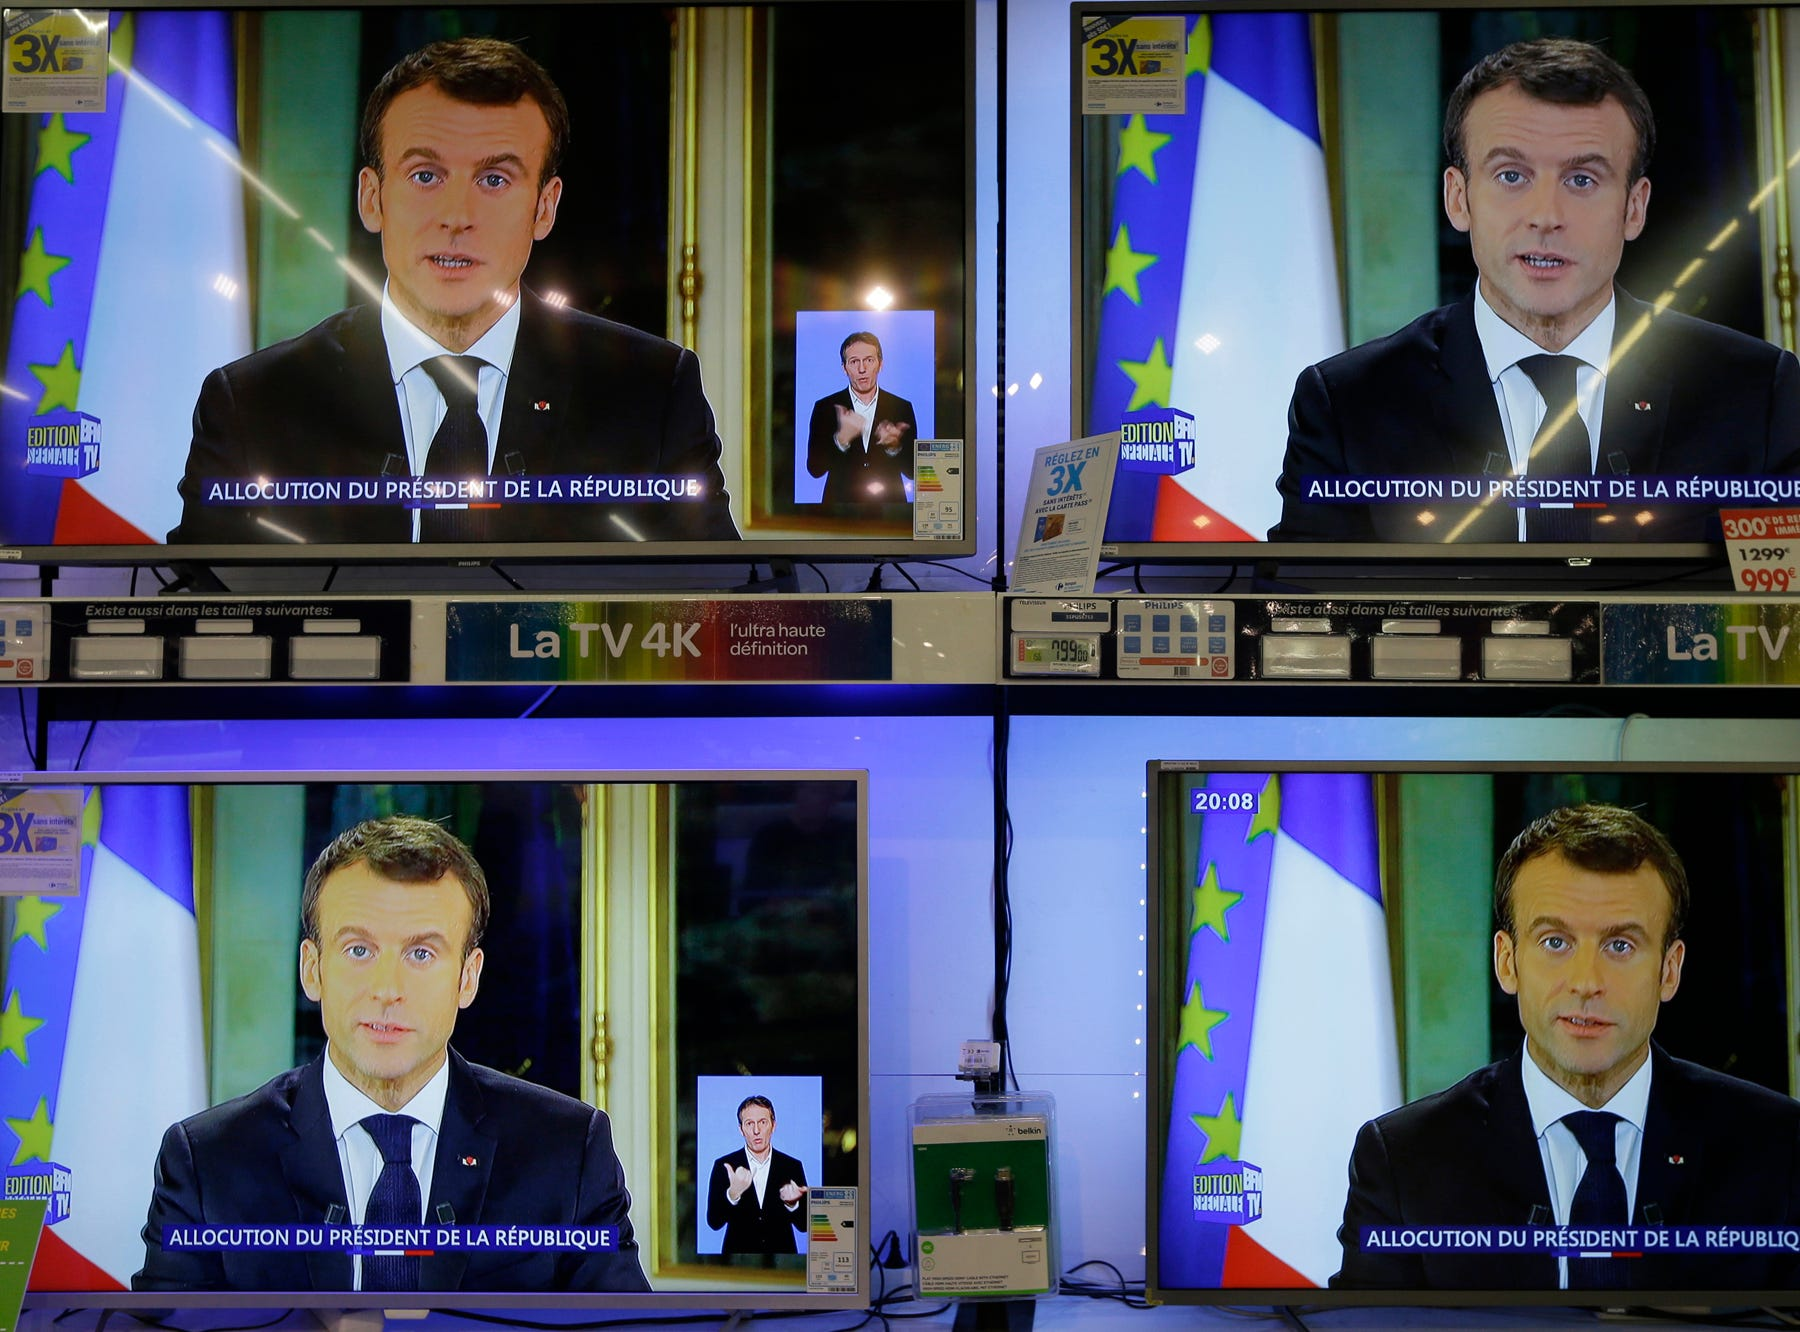 TV screens show French President Emmanuel during a televised address to the nation, at an electrical appliance store in Marseille, southern France, Monday, Dec. 10, 2018. President Emmanuel Macron has acknowledged he's partially responsible for the anger that has fueled weeks of protests in France, an unusual admission for the leader elected last year. (AP Photo/Claude Paris)